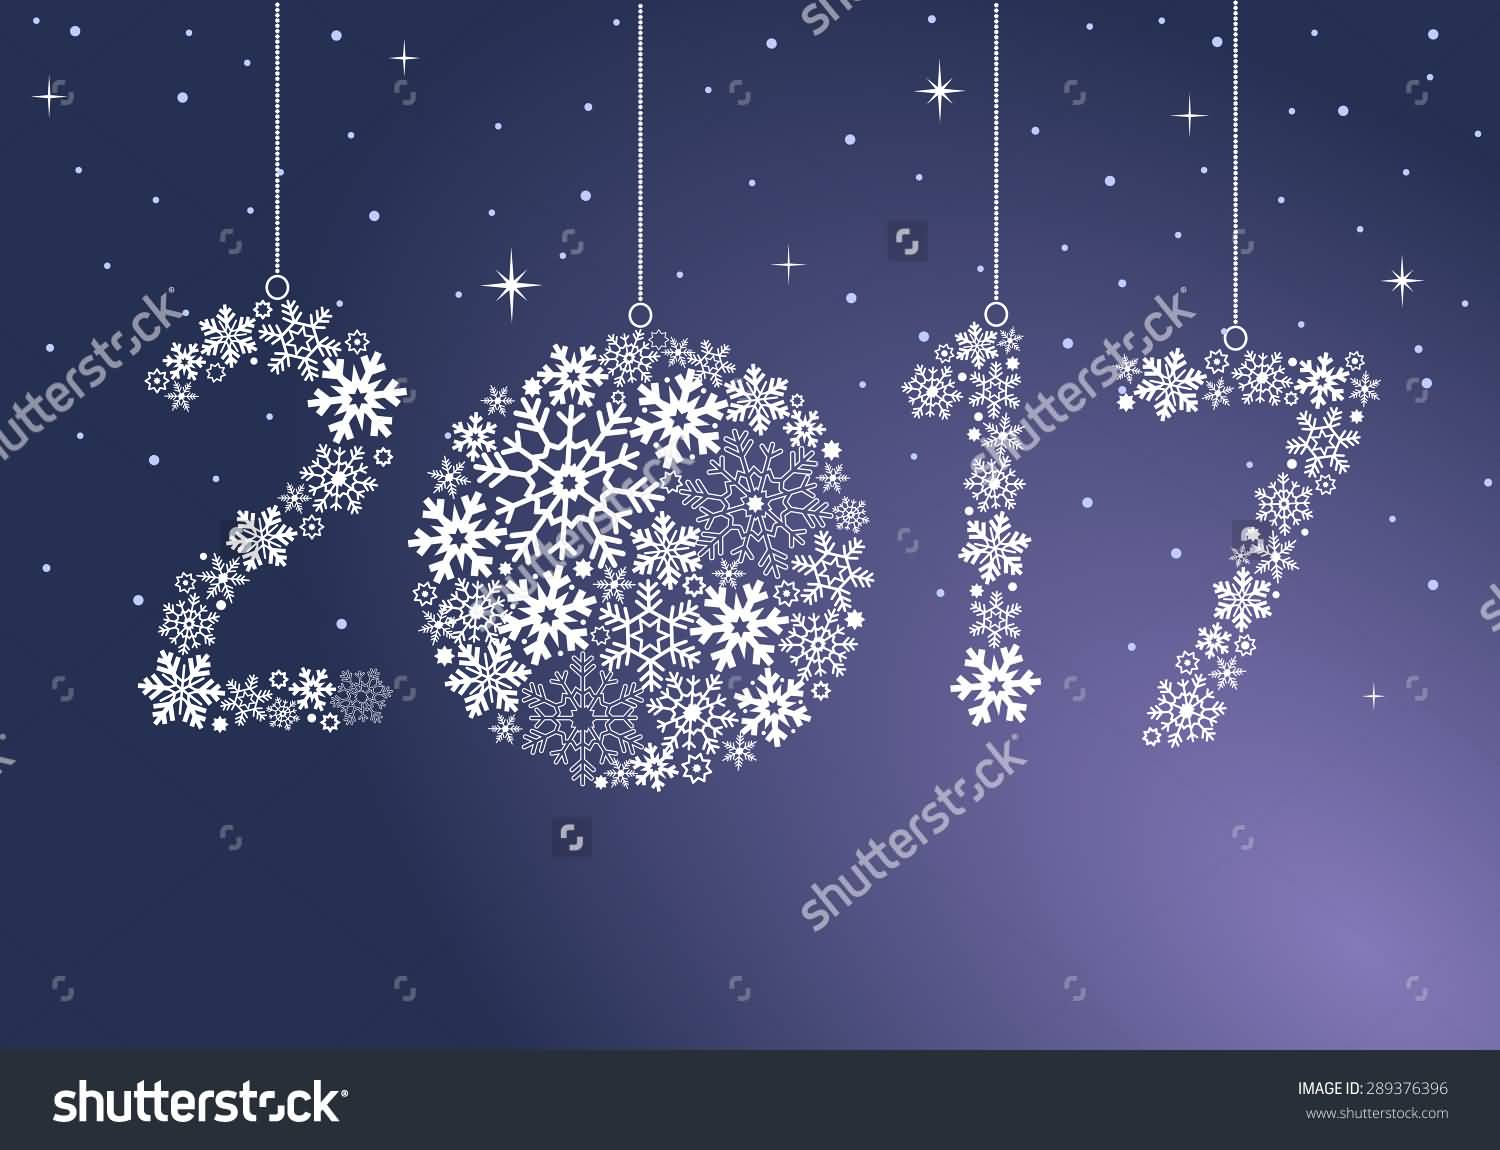 New Year clipart purple Clipart Snowflakes 2017 Beautiful Pictures